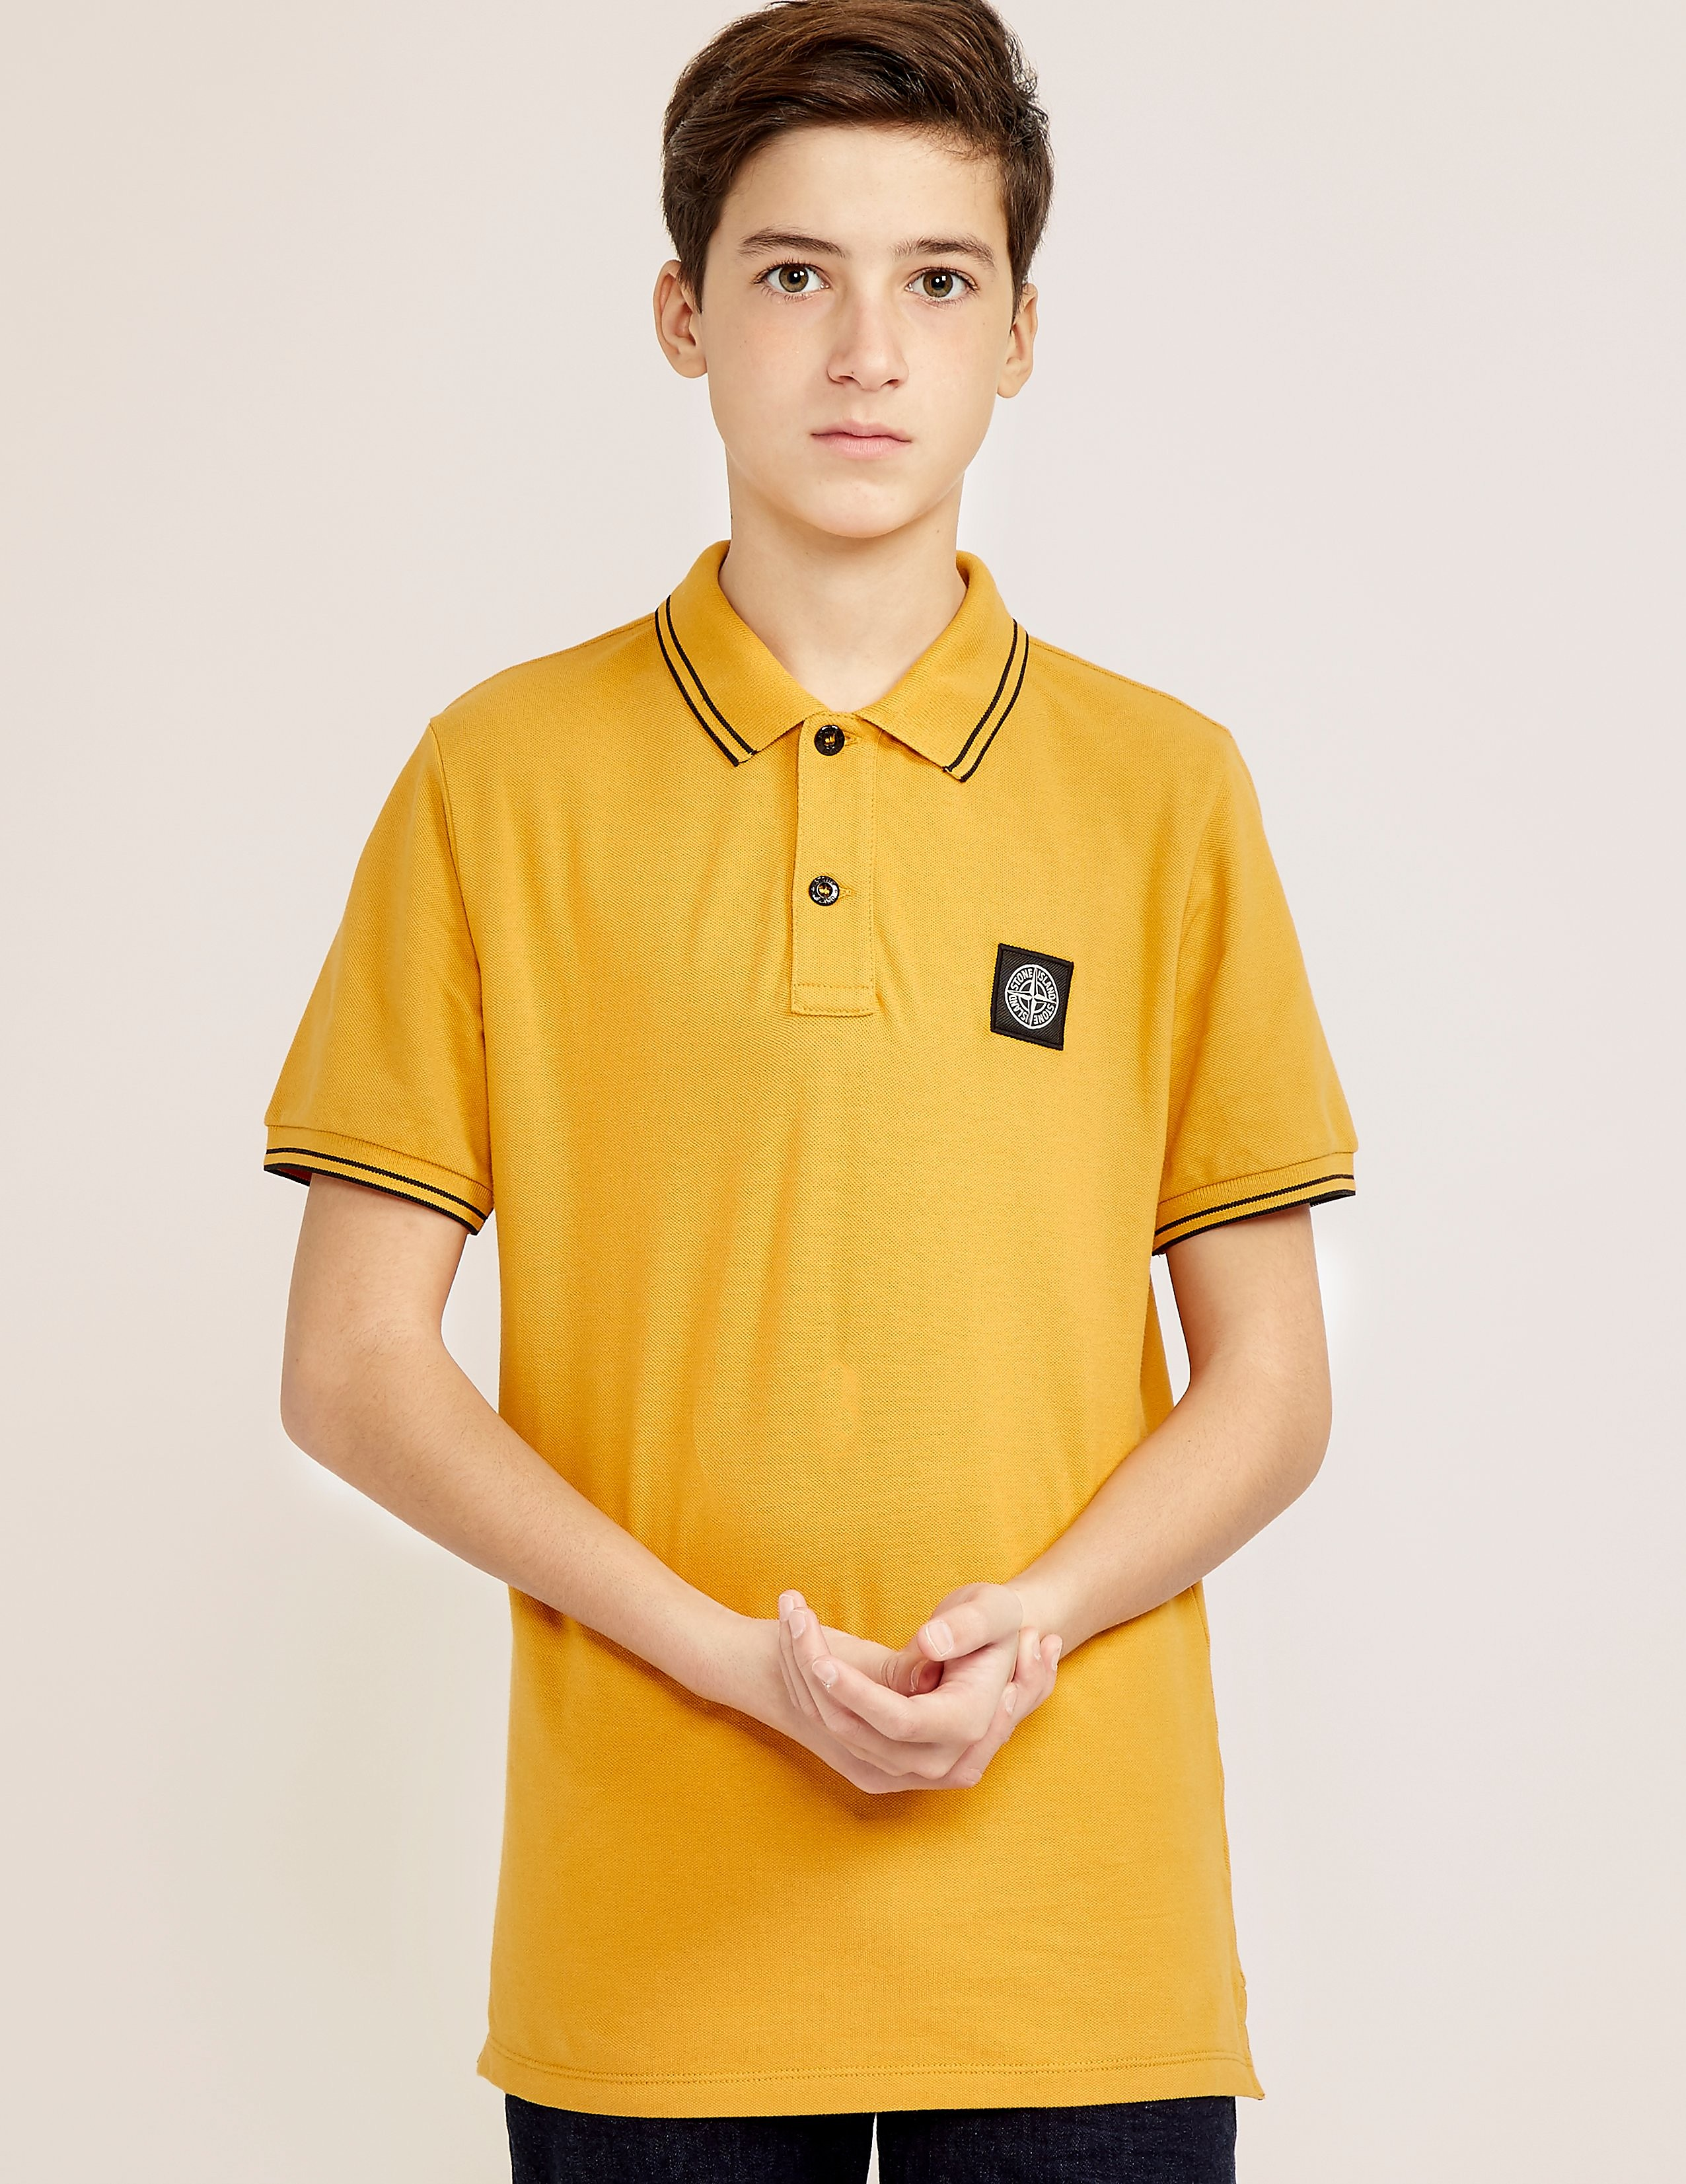 Stone Island Kid's Short Sleeve Polo Shirt